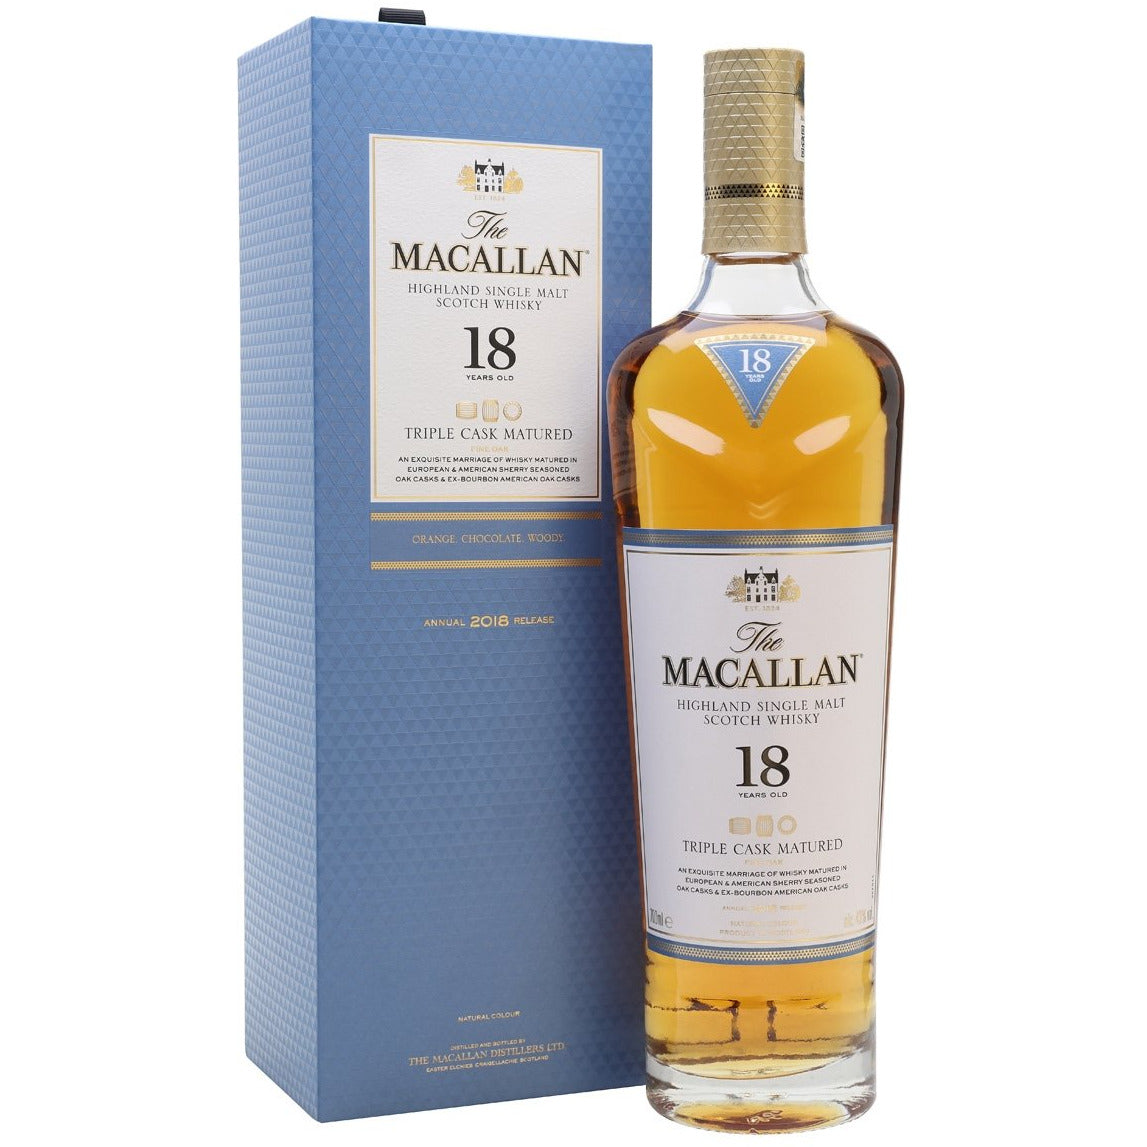 The Macallan 18 Year Triple Cask Matured Highland single Malt Scotch Whisky (750ML)